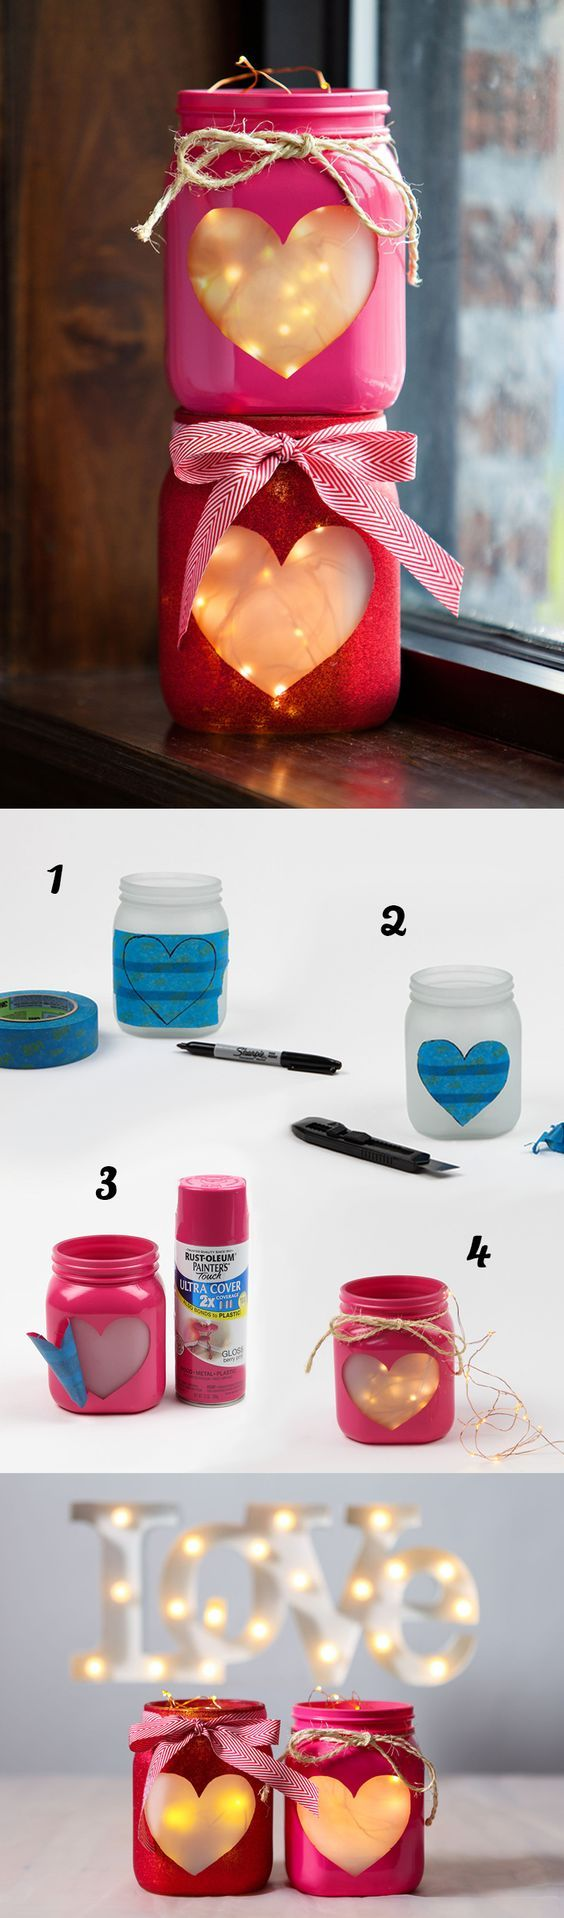 Mason Jar Heart Lantern DIY with copper wire fairy string lights or a flameless tea light candle. This is a fantastic